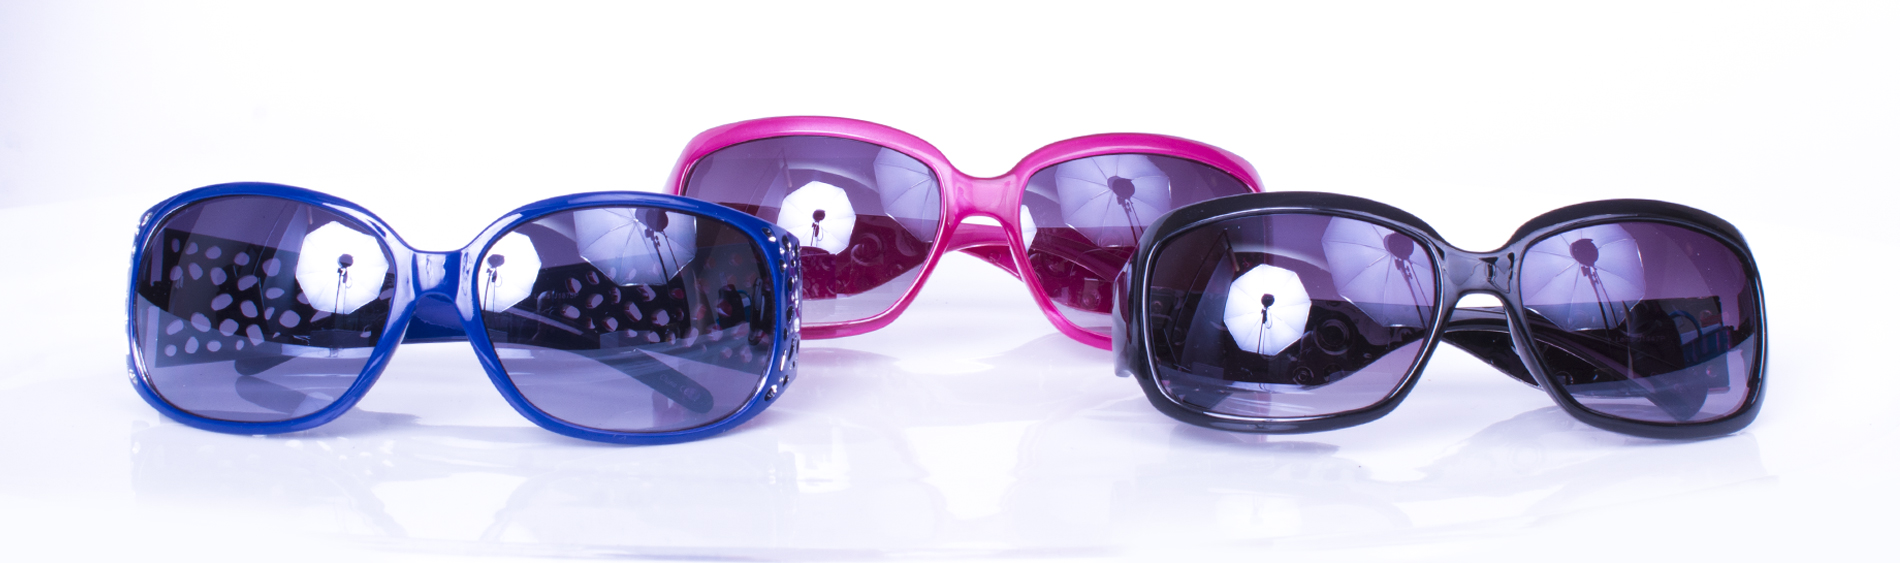 fashion accessories, spring, summer, sunglasses, inspired, quality